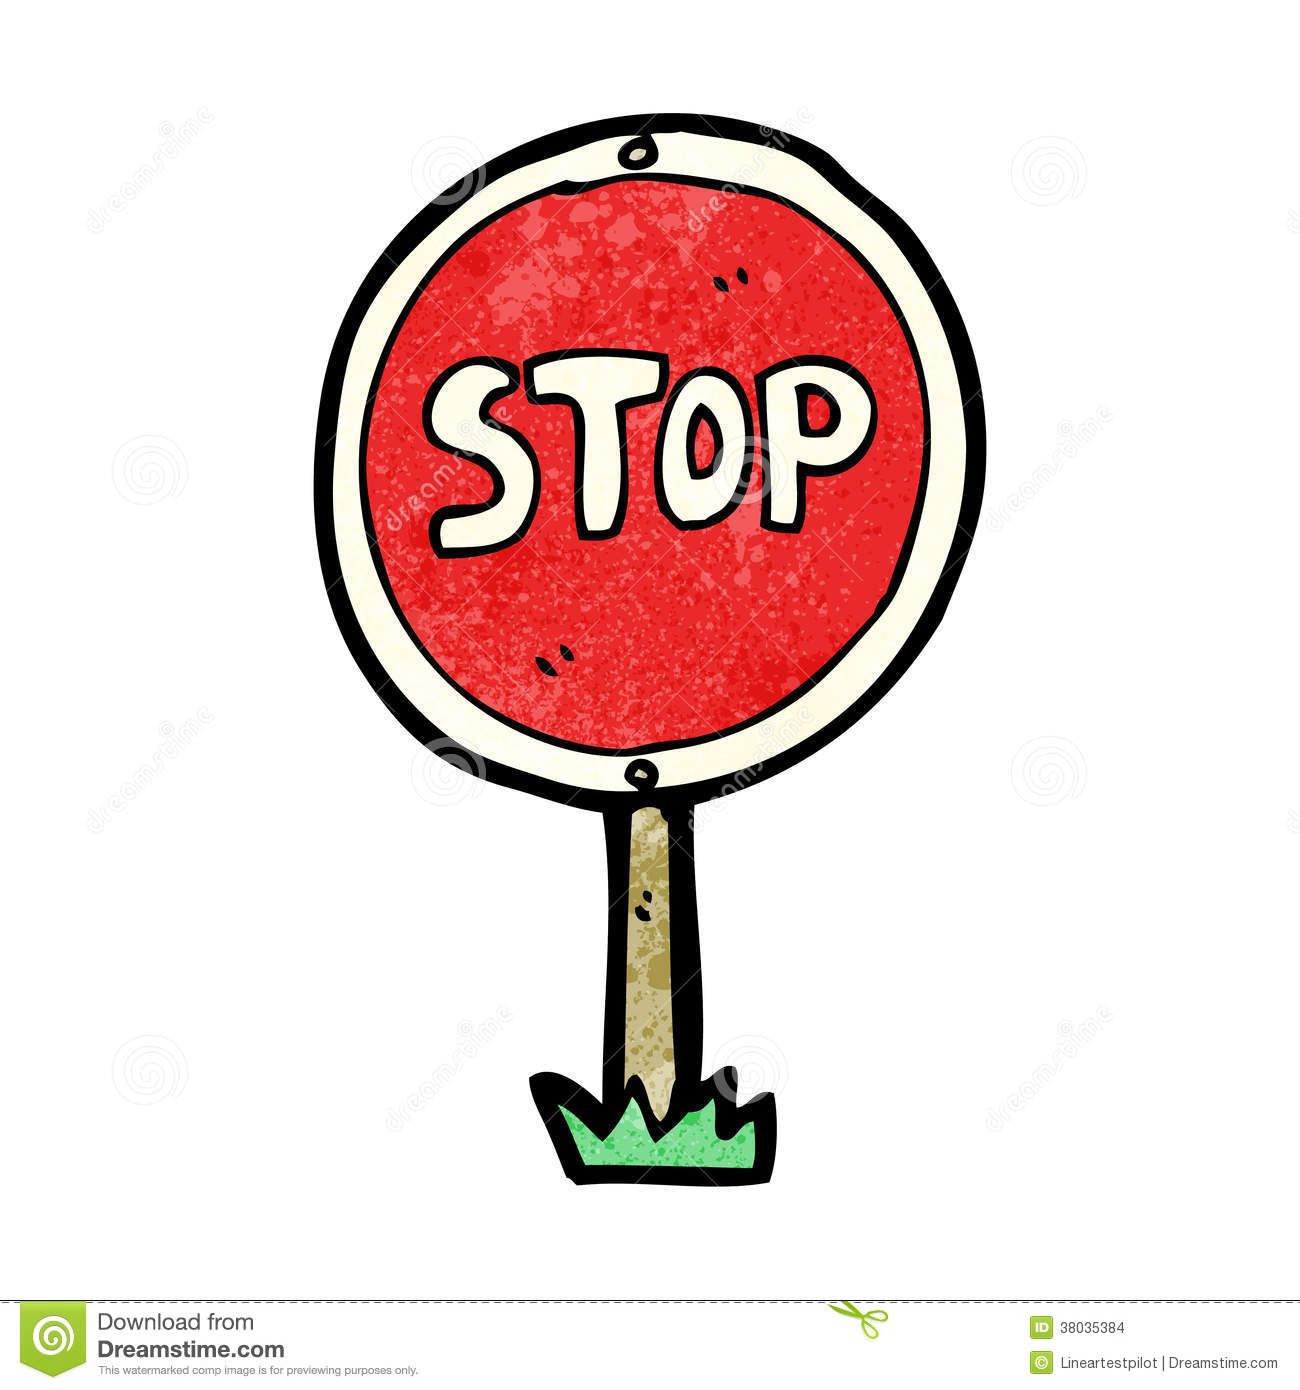 More similar stock images of ` cartoon stop sign `